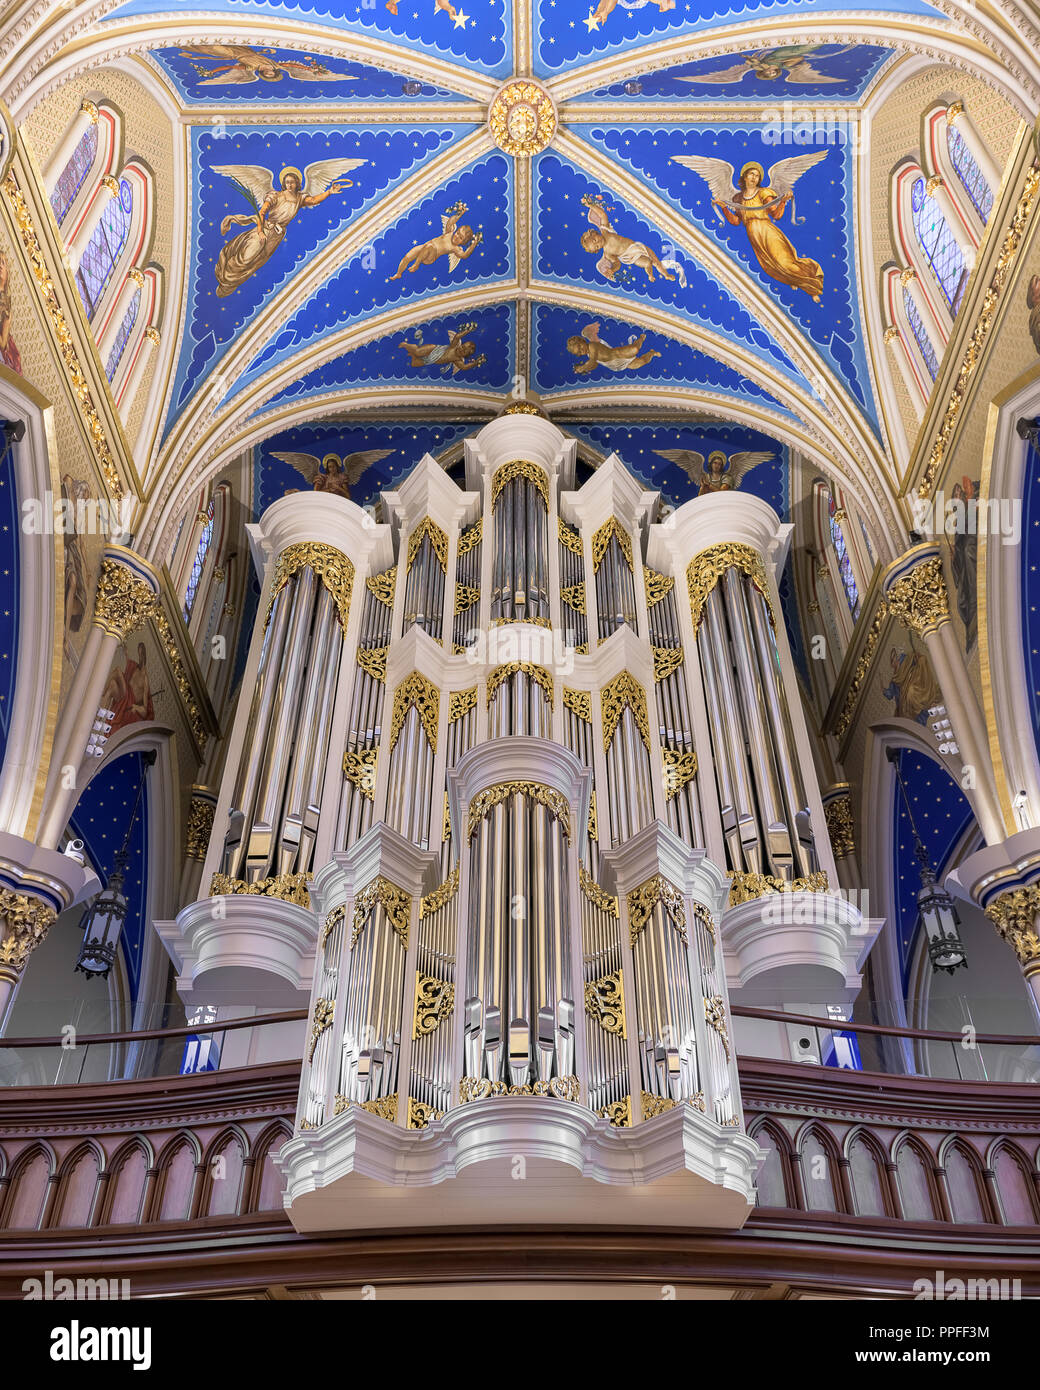 Pipe organ inside the historic Basilica of the Sacred Heart on the campus of the University of Notre Dame in South Bend, Indiana - Stock Image